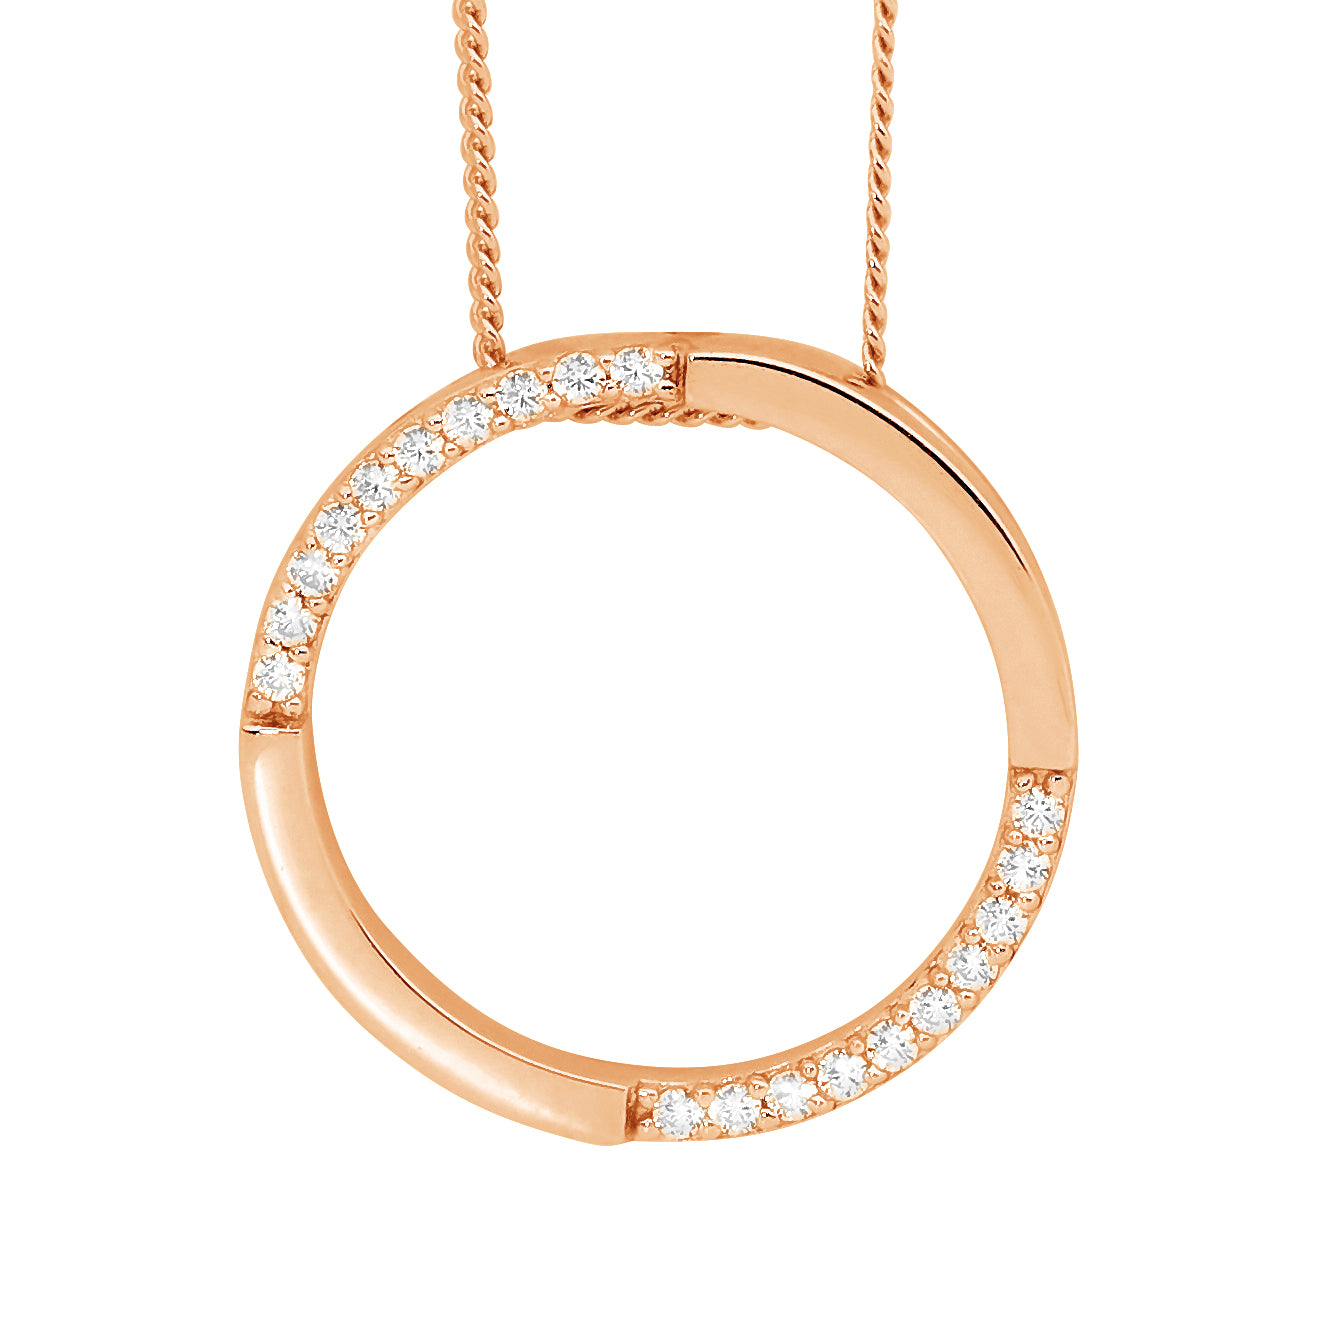 S/S WH CZ 20MM OPEN CIRCLE PENDANT W/ RG PLATING -